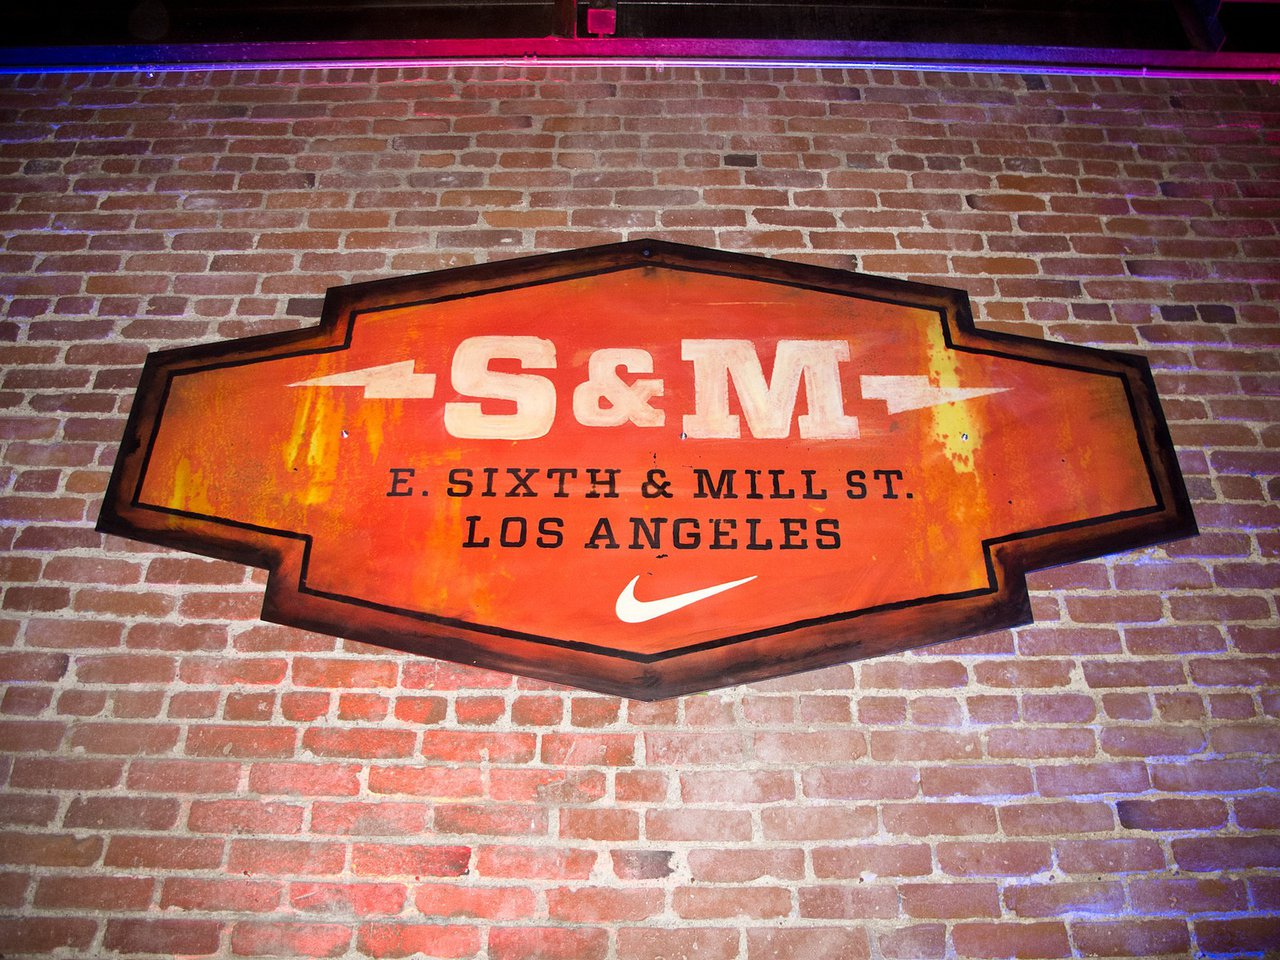 Nike 6th & Mill photo S AND M SIGNAGE.jpg